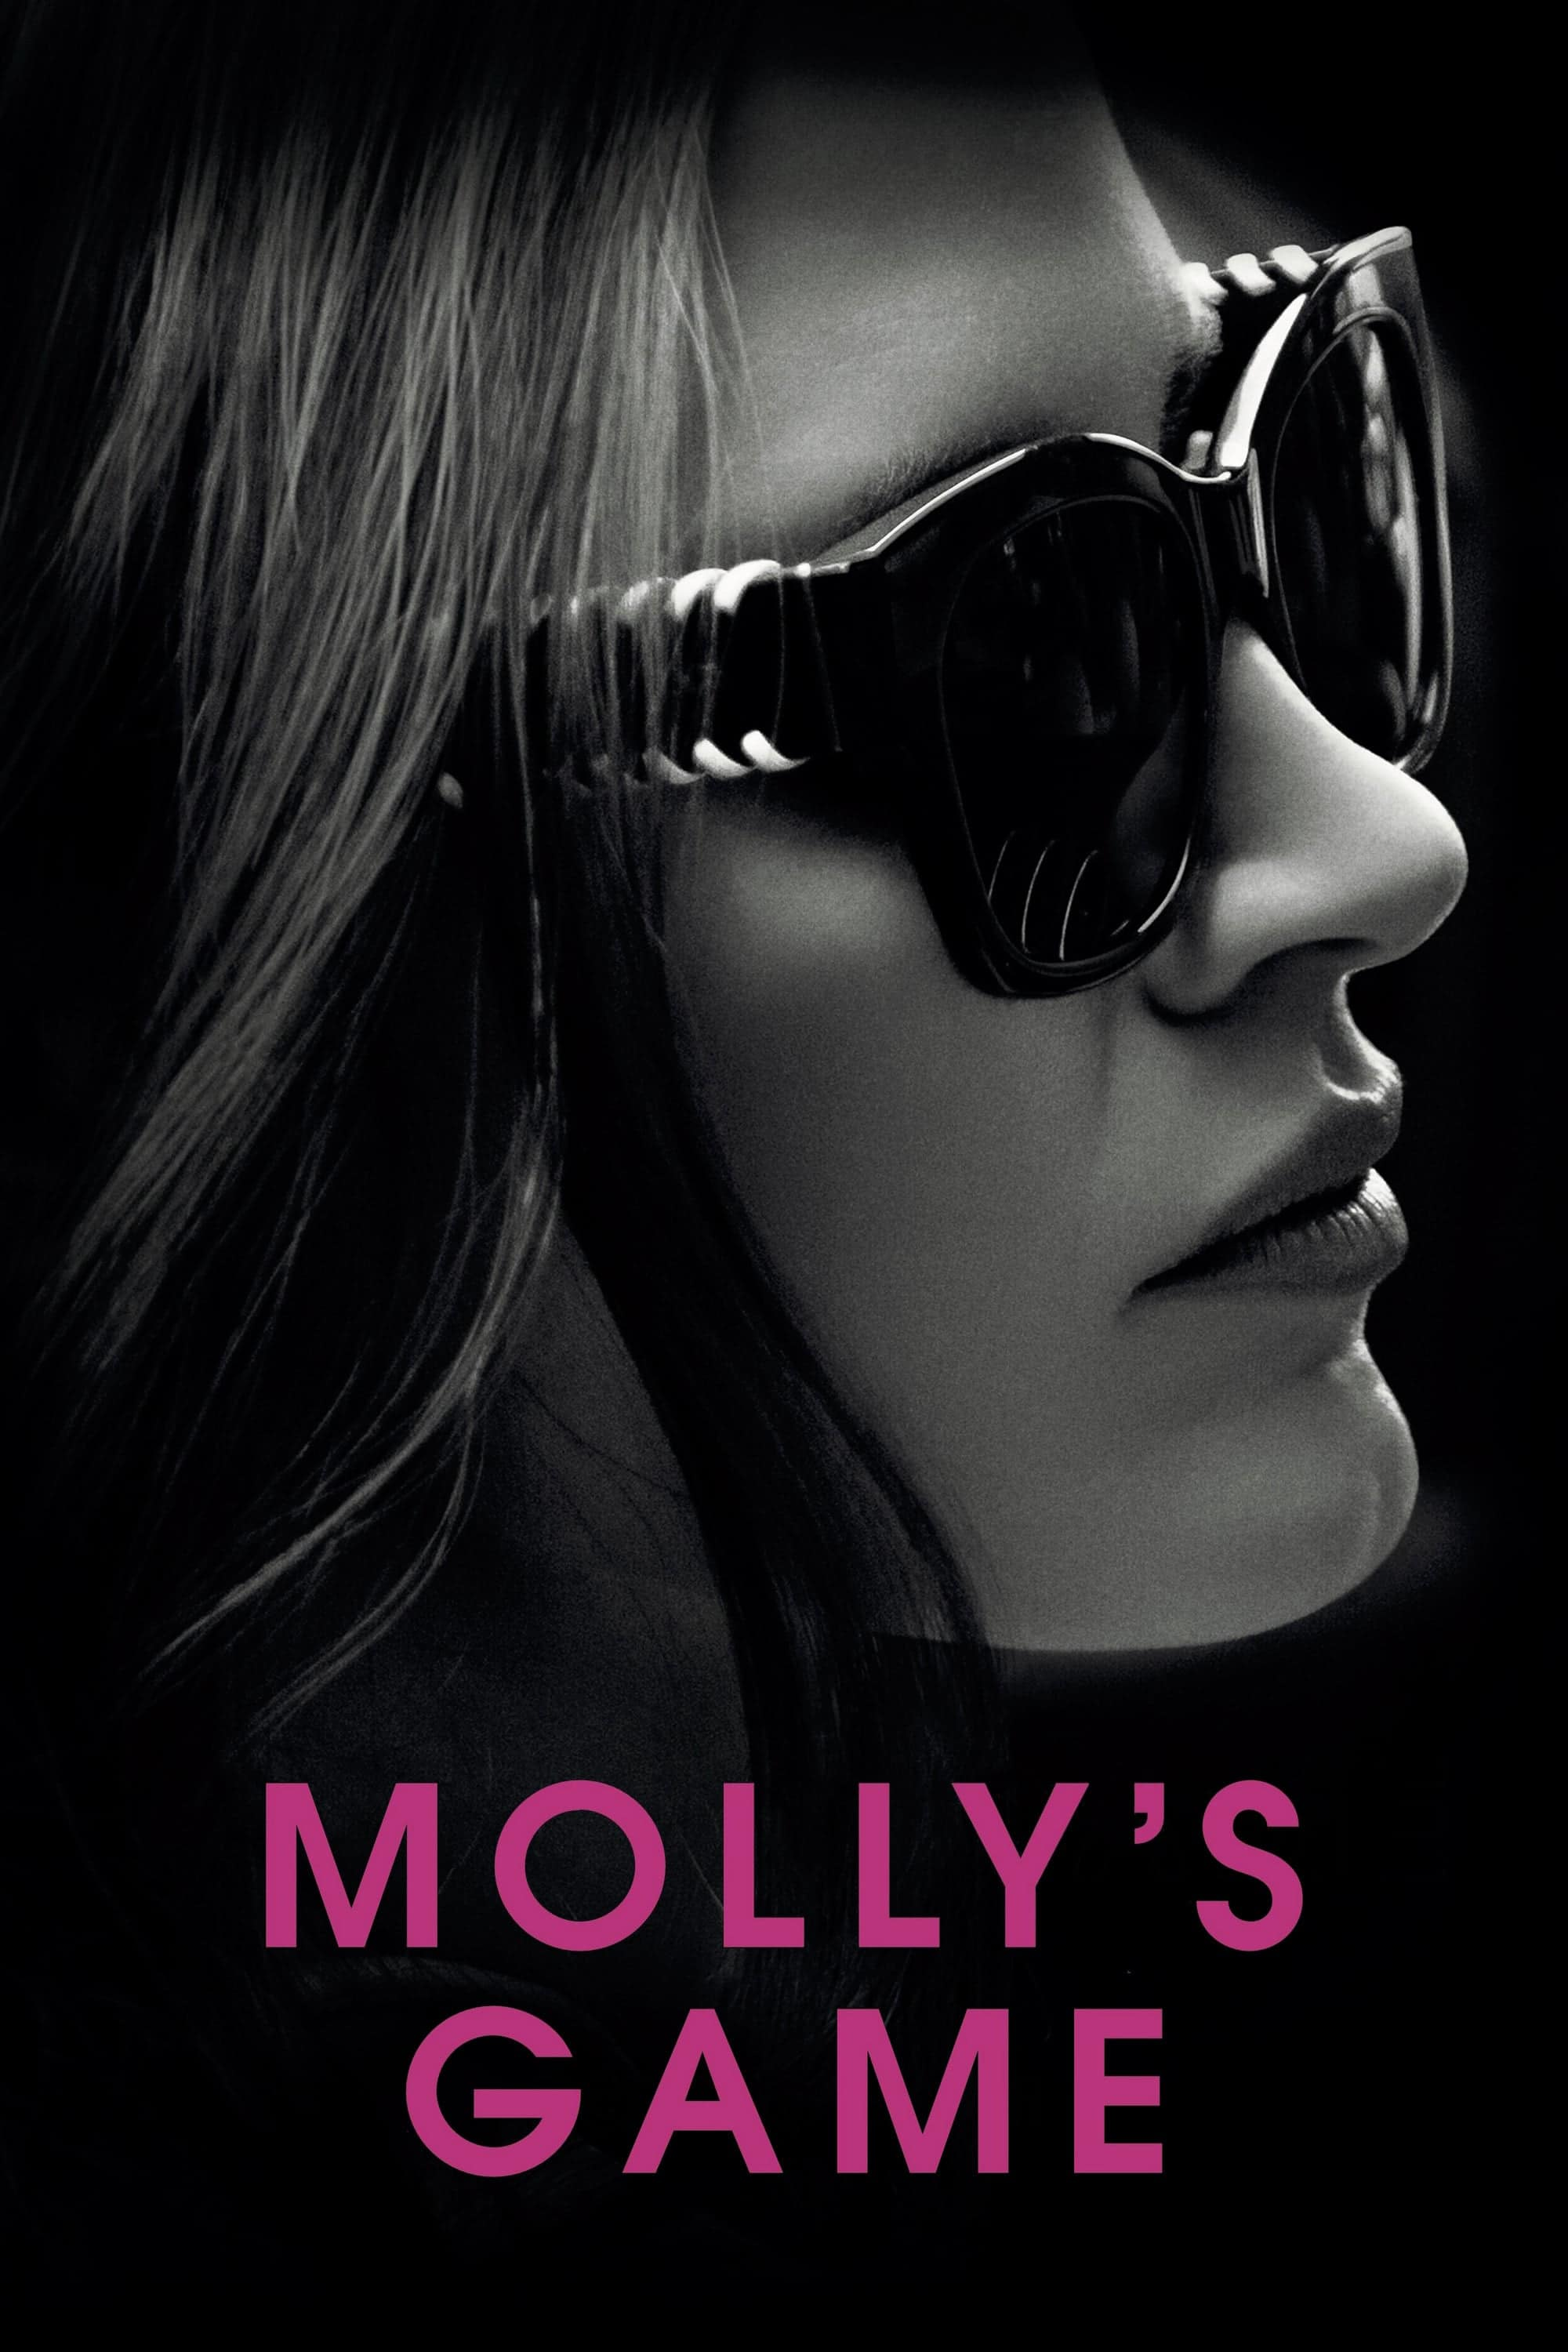 Molly's Game, 2017